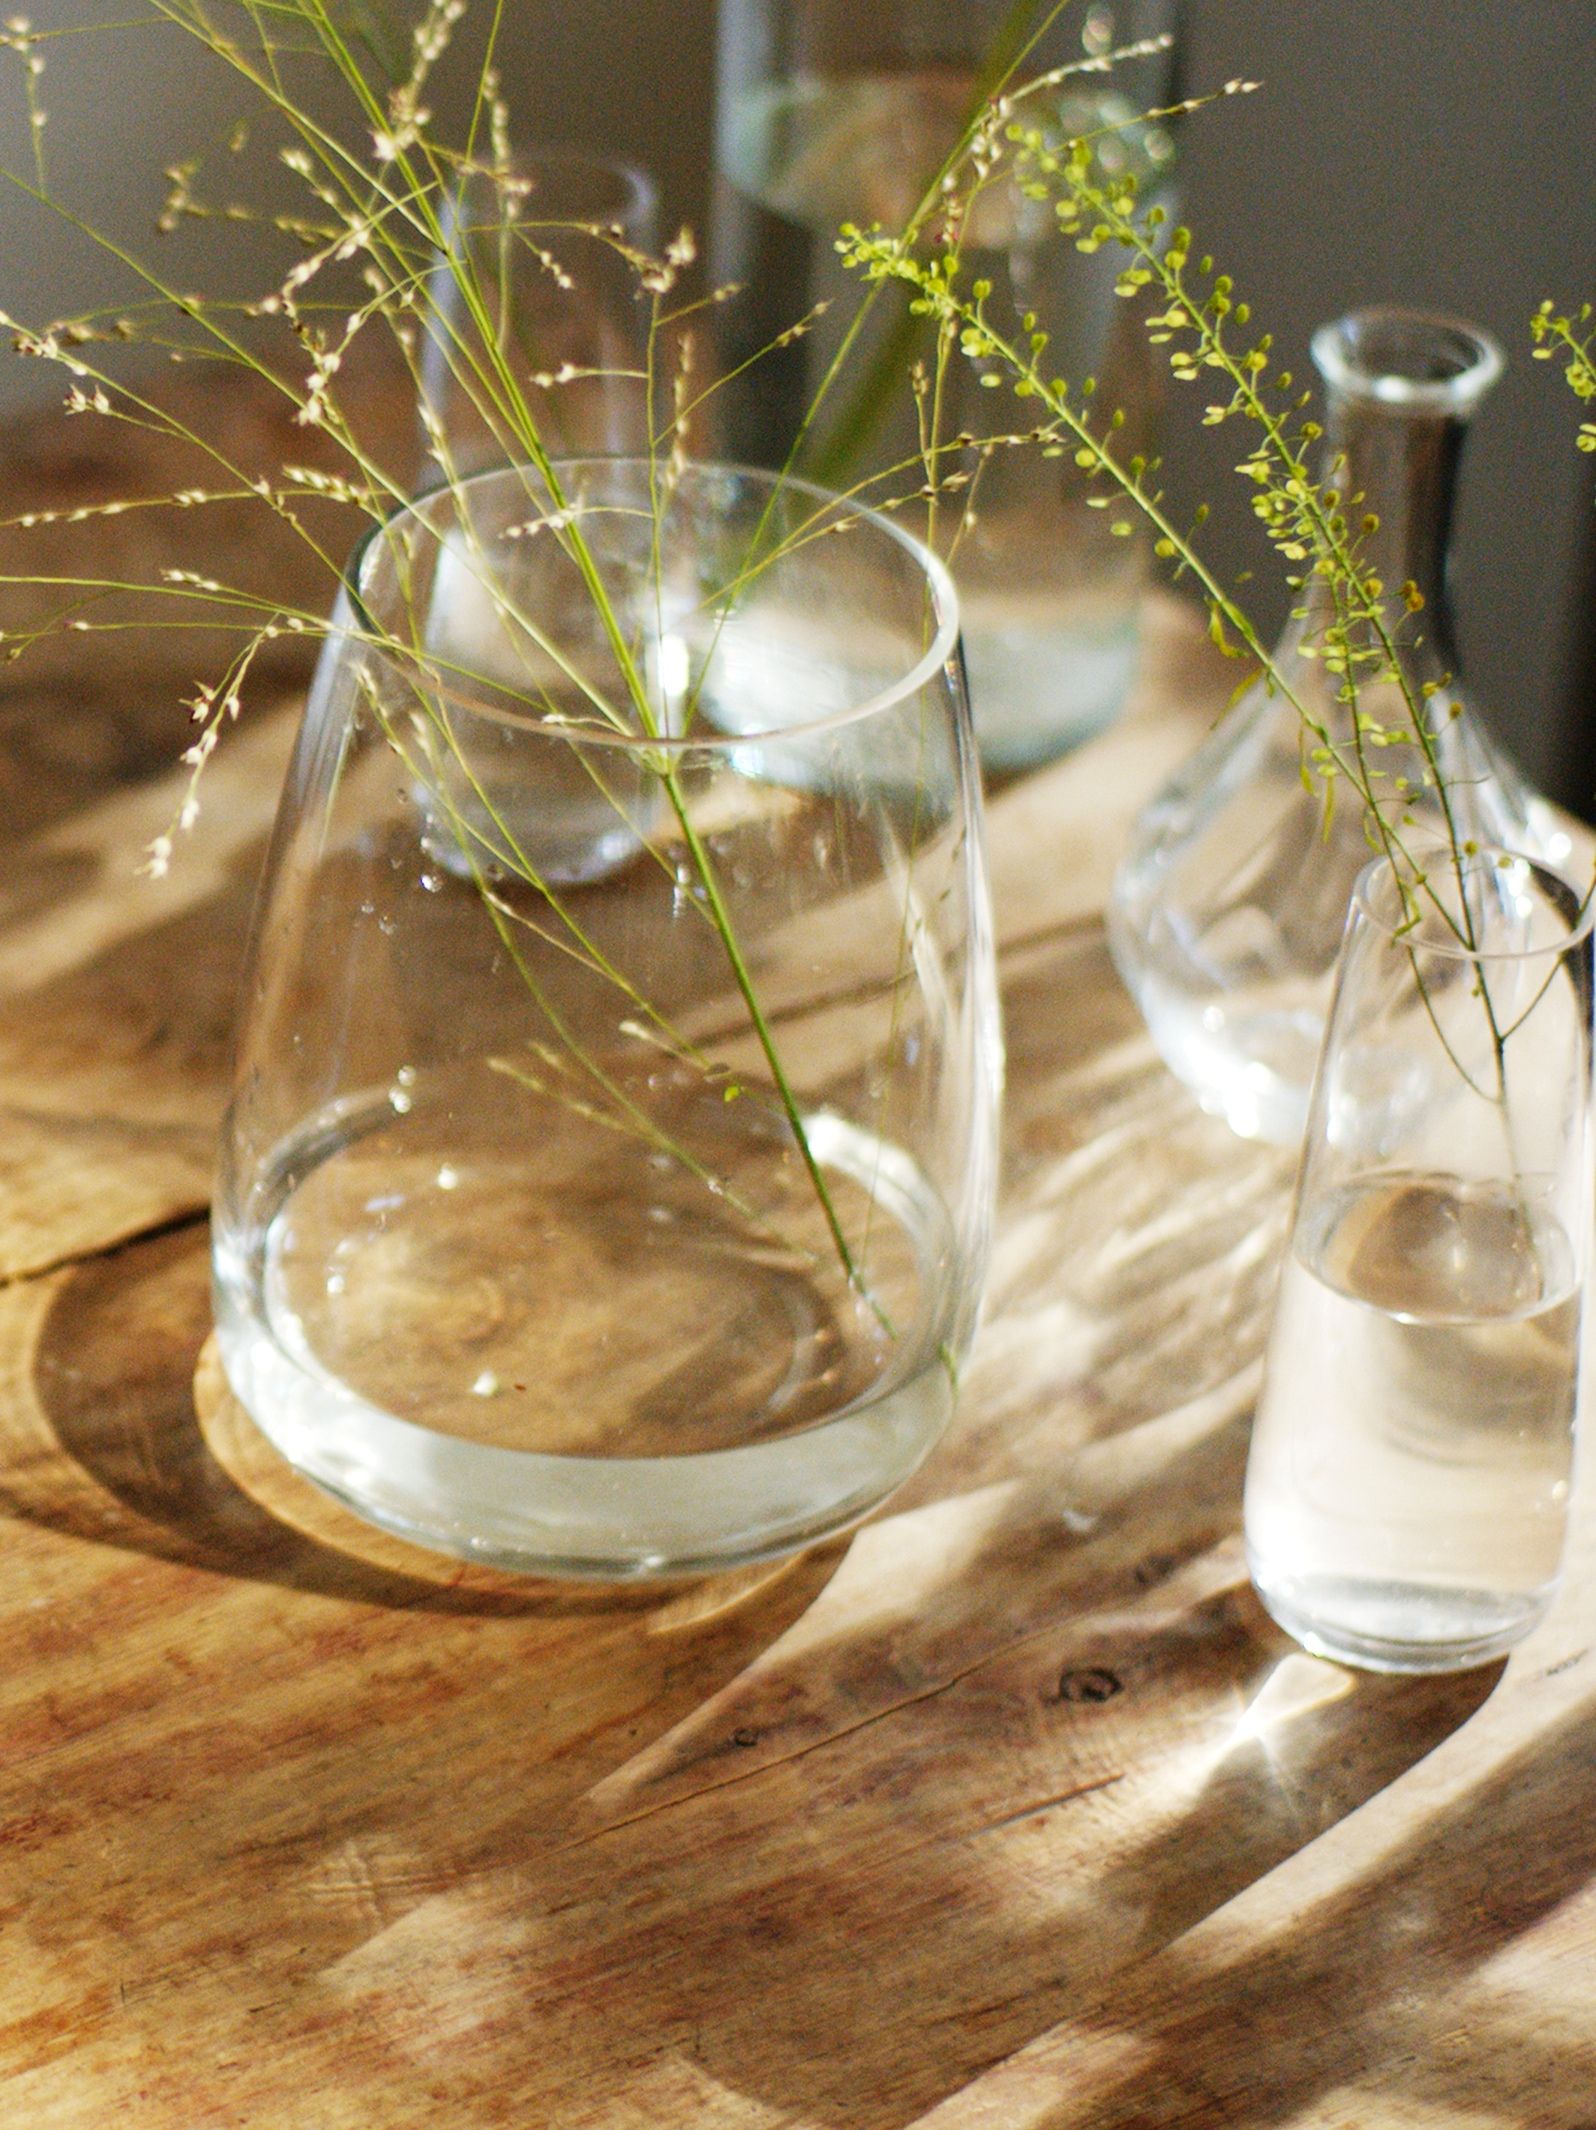 A wooden table holds a group of mixed clear glass vases, including a curved BERÄKNA clear glass vase with a plant sprig.